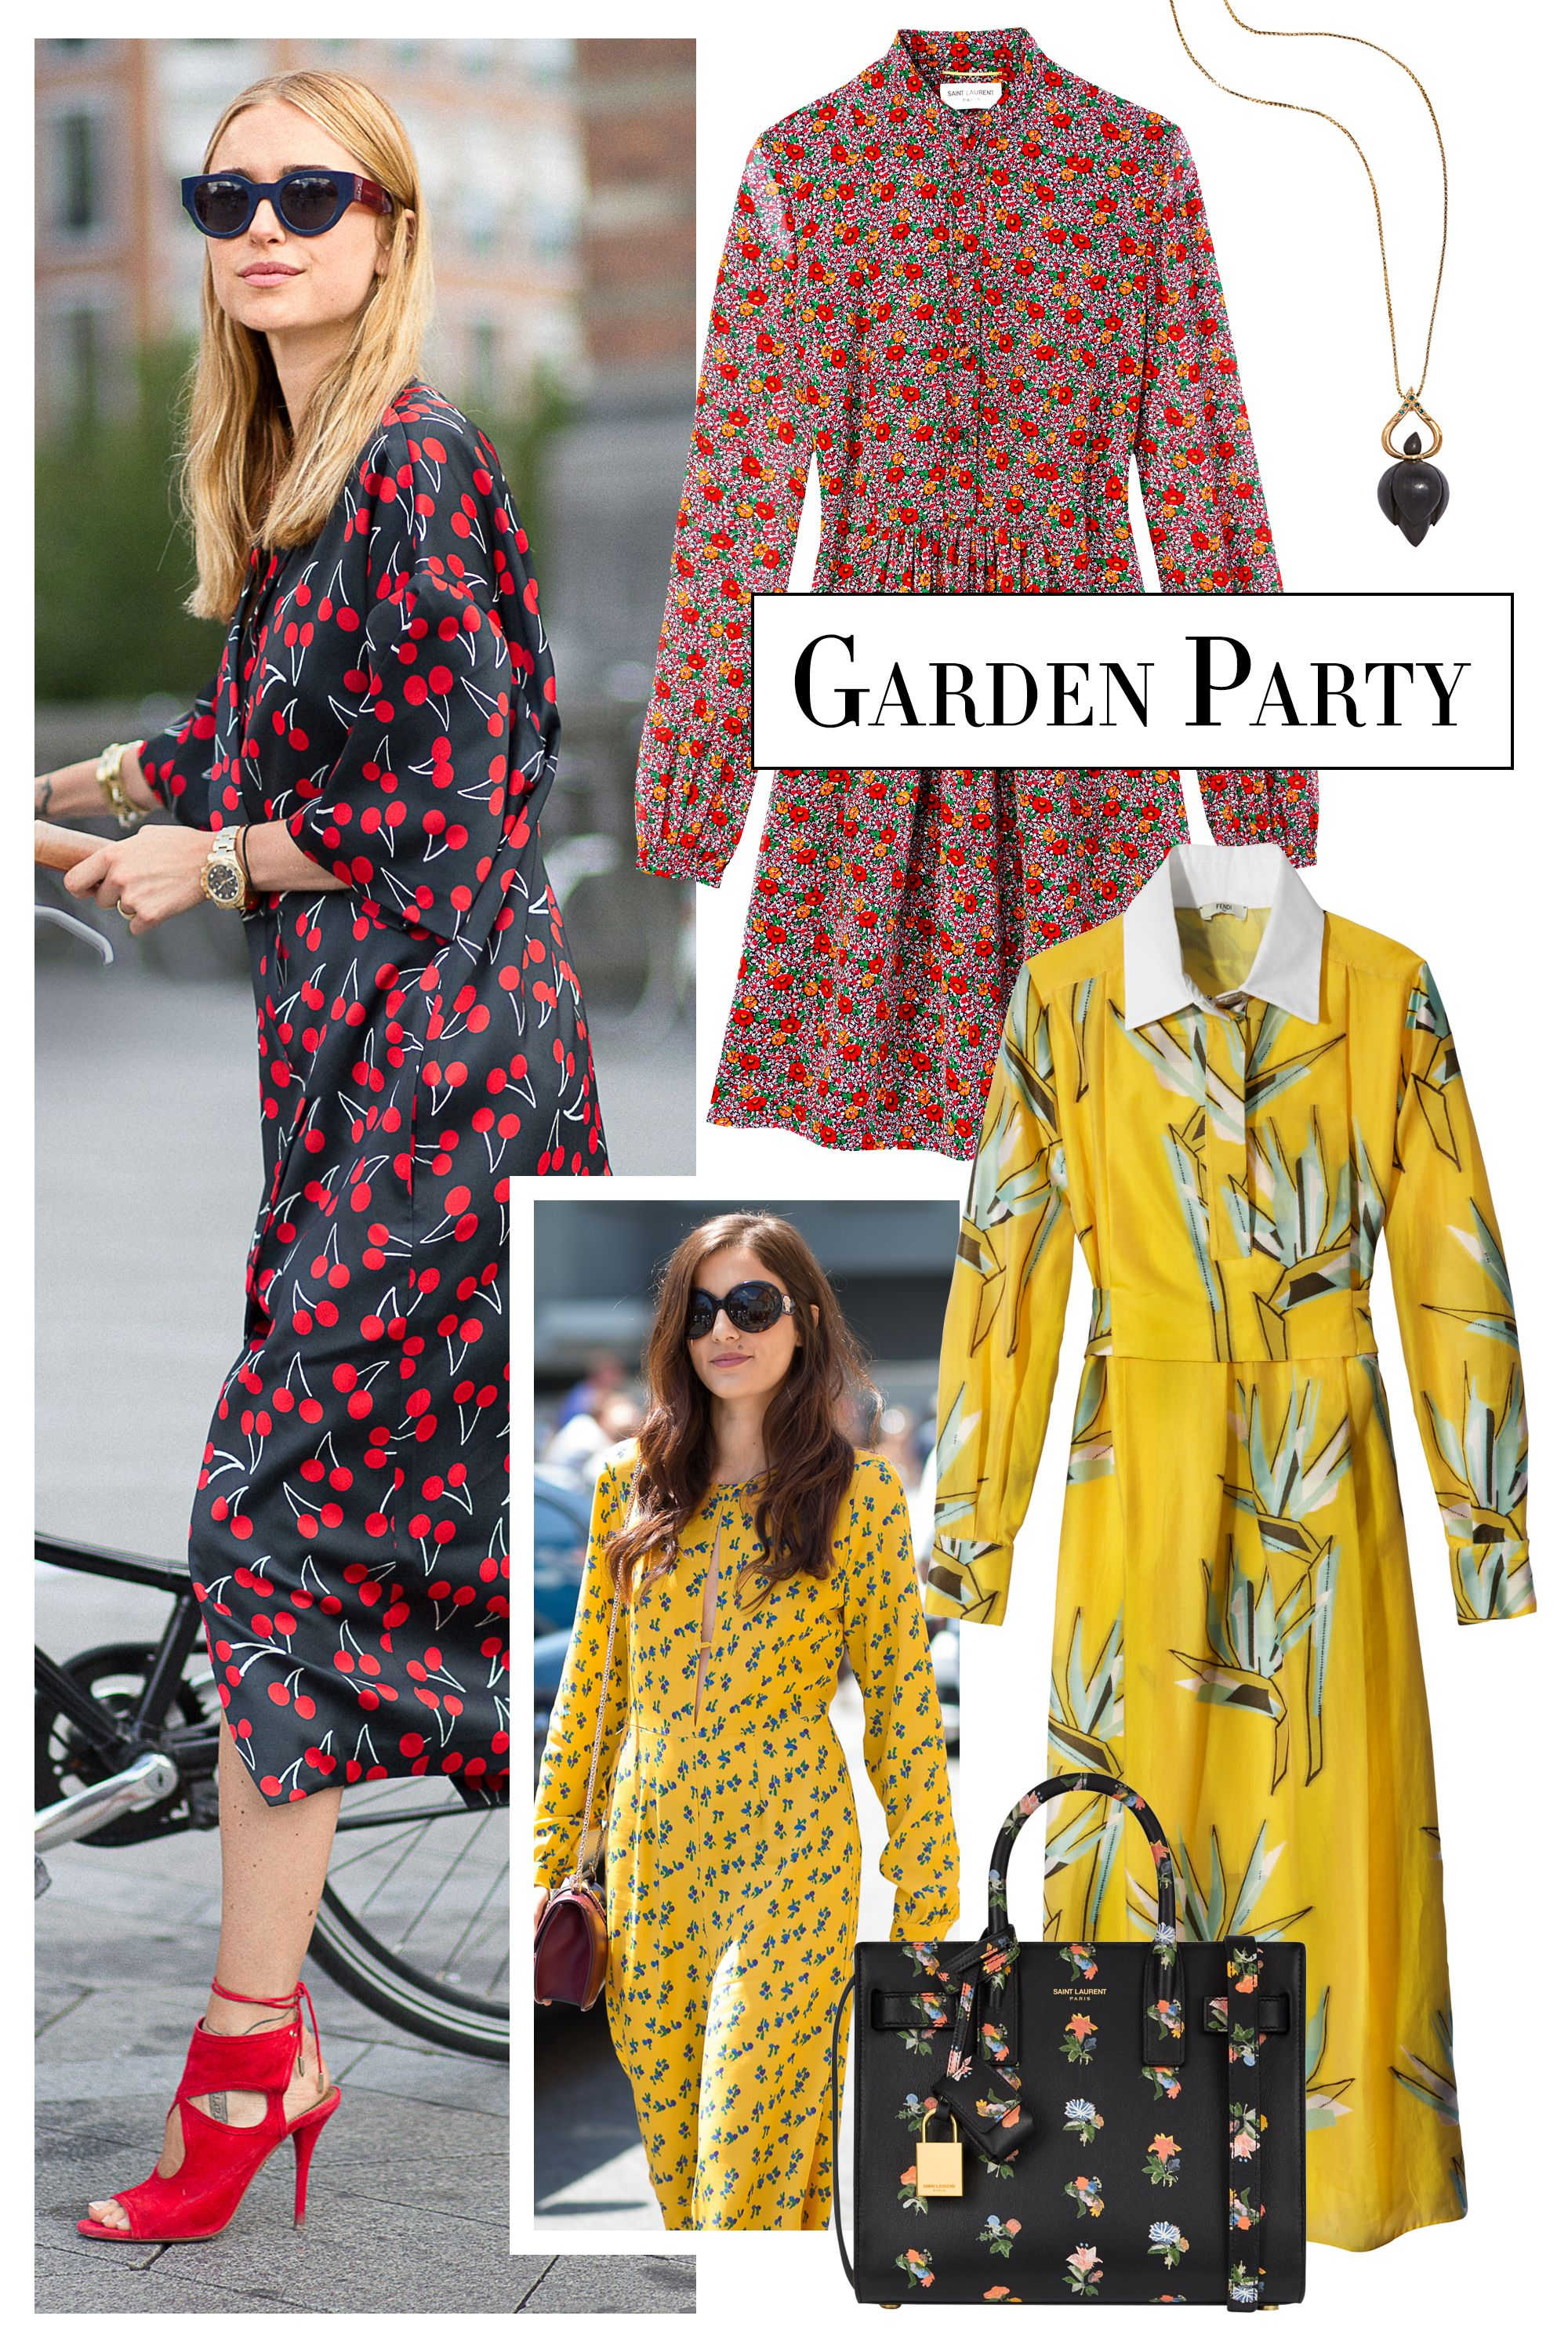 "<p>Bouquet-inspired prints bring a burst of femininity to fall's silhouettes. Team with a bold tote or vibrant heels, like stylist <a href=""http://lookdepernille.theyouway.com/"" target=""_blank"">Pernille Teisbaek</a>. </p><p><strong>Alice Cicolini </strong>necklace, $965, <a href=""http://www.alicecicolini.com/"" target=""_blank"">alicecicolini.com</a>; <strong>Fendi </strong>dress, $2,500, 212-897-2244; <strong>Saint Laurent by Hedi Slimane </strong>bag, $2,250, 212-980-2970; <strong>Saint Laurent by Hedi Slimane </strong>dress, $2,750. </p>"